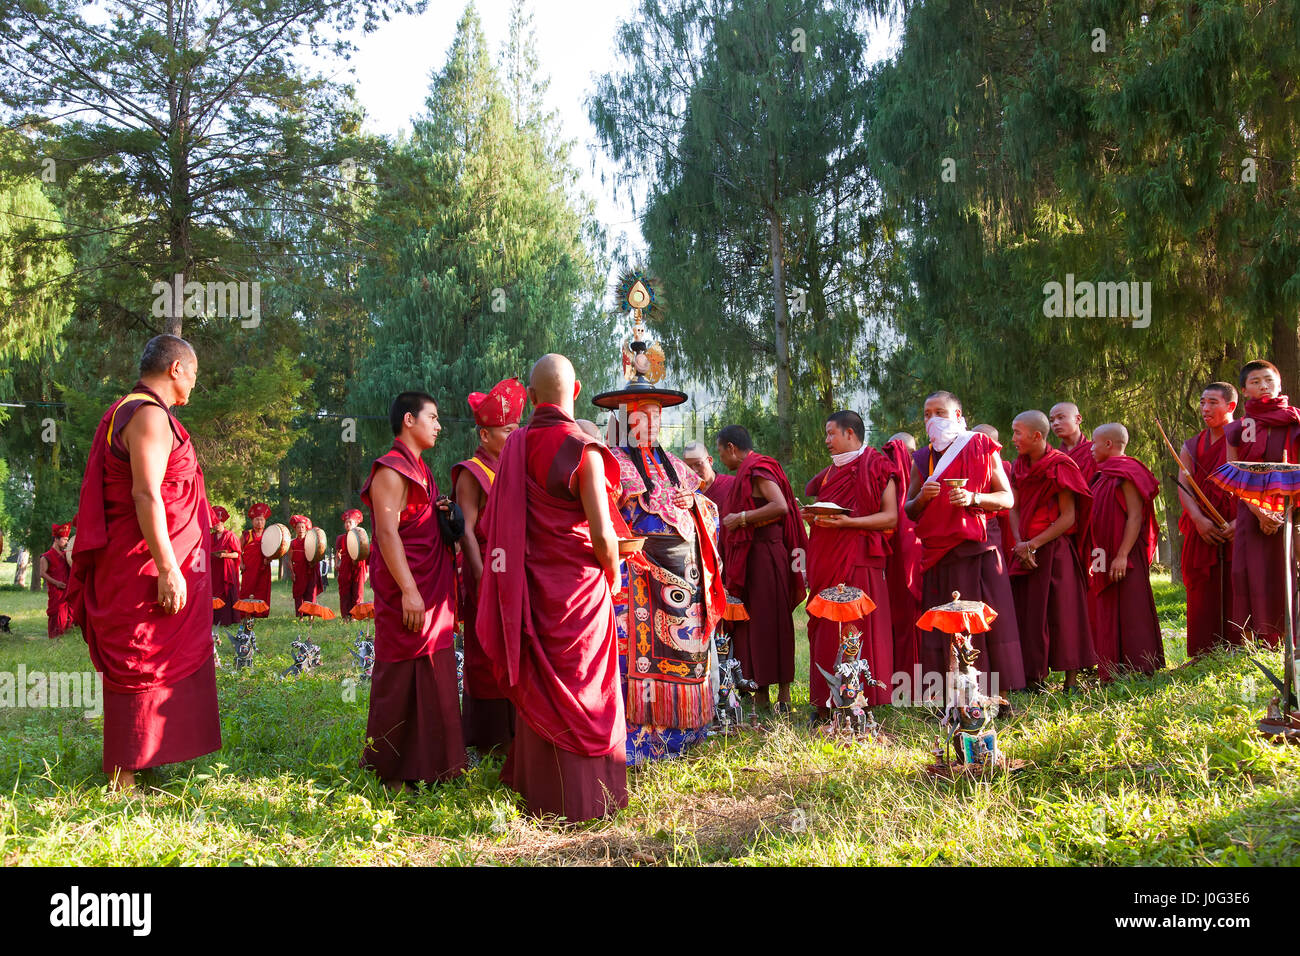 Monks carrying out Buddhist ceremony, Punakha Dzong (monastery), Punakha, Bhutan - Stock Image